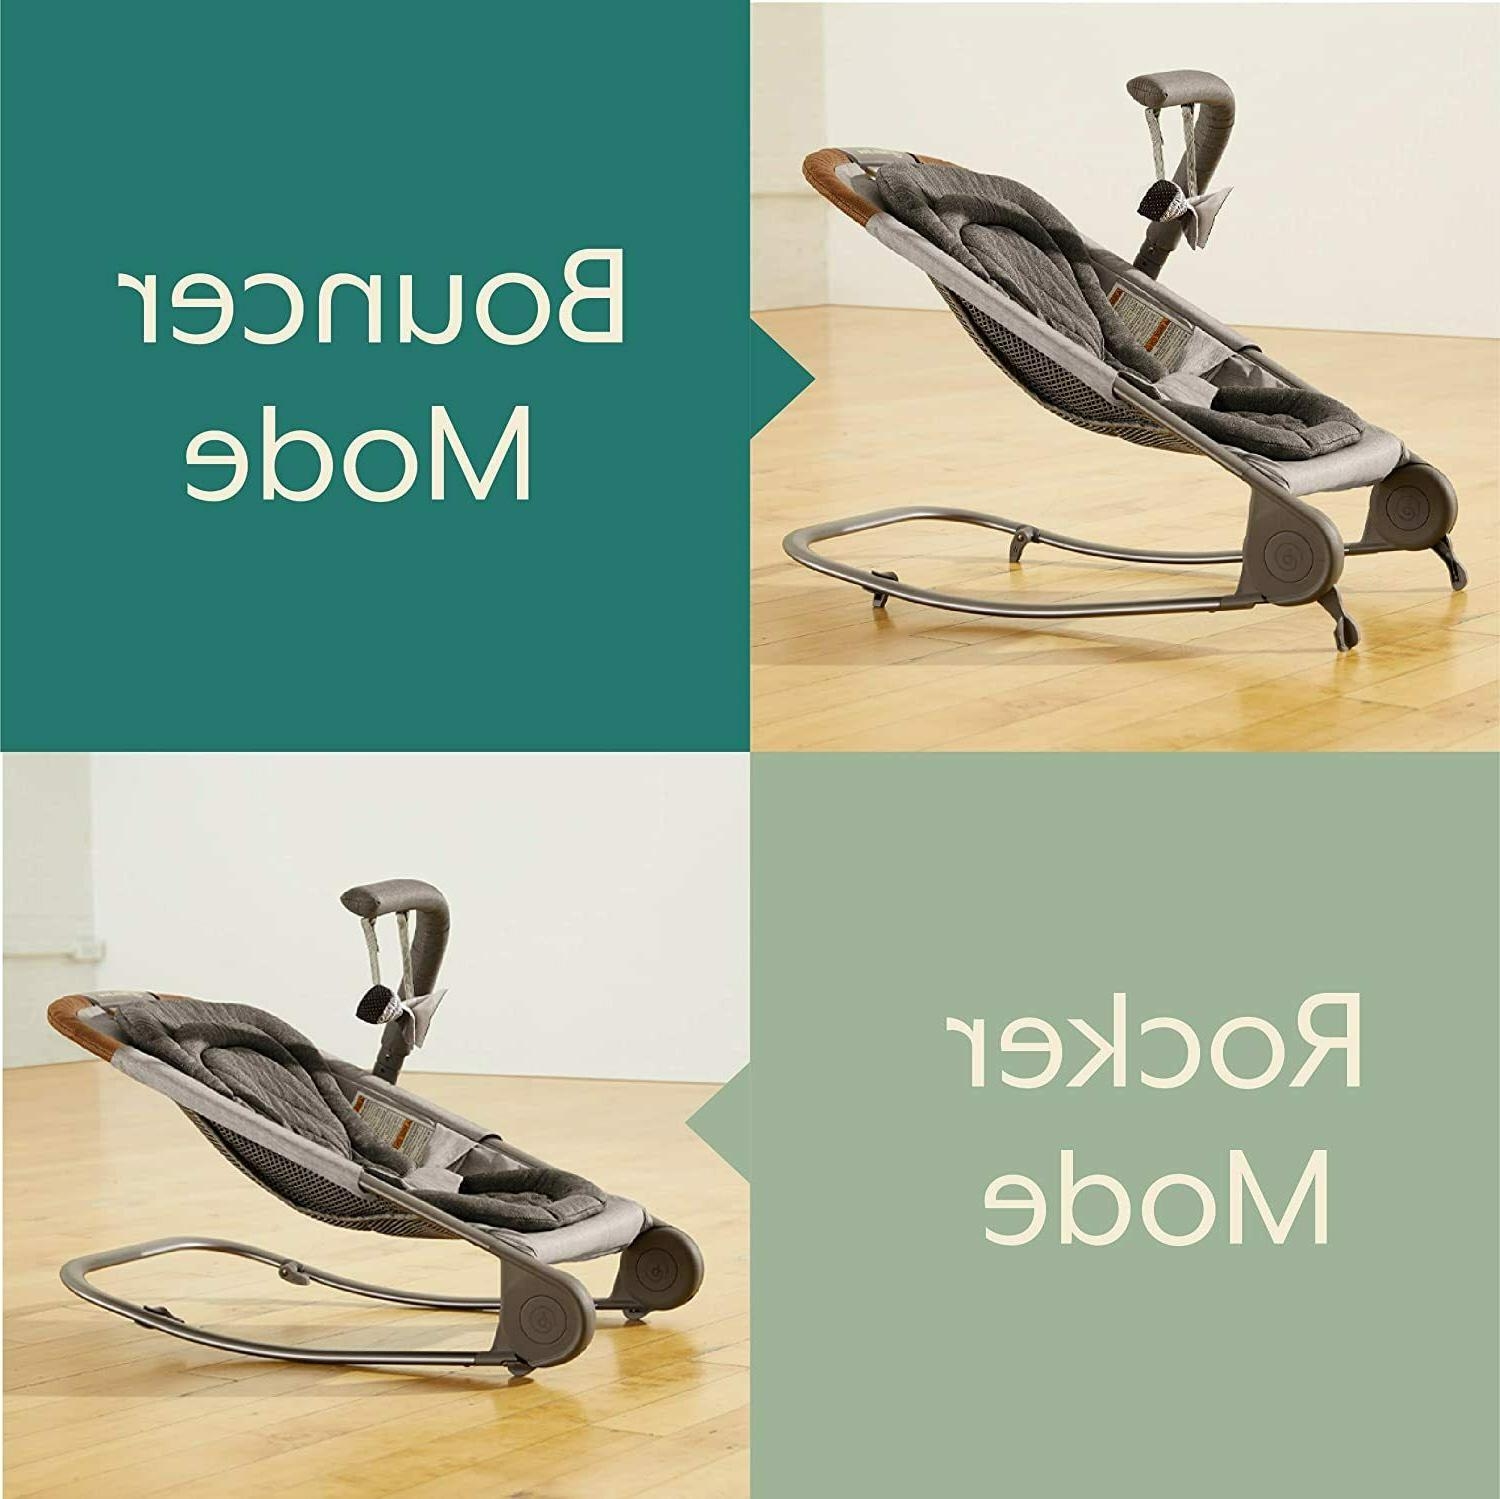 born Bouncer Baby Rocker Modes Compact Fold Easy